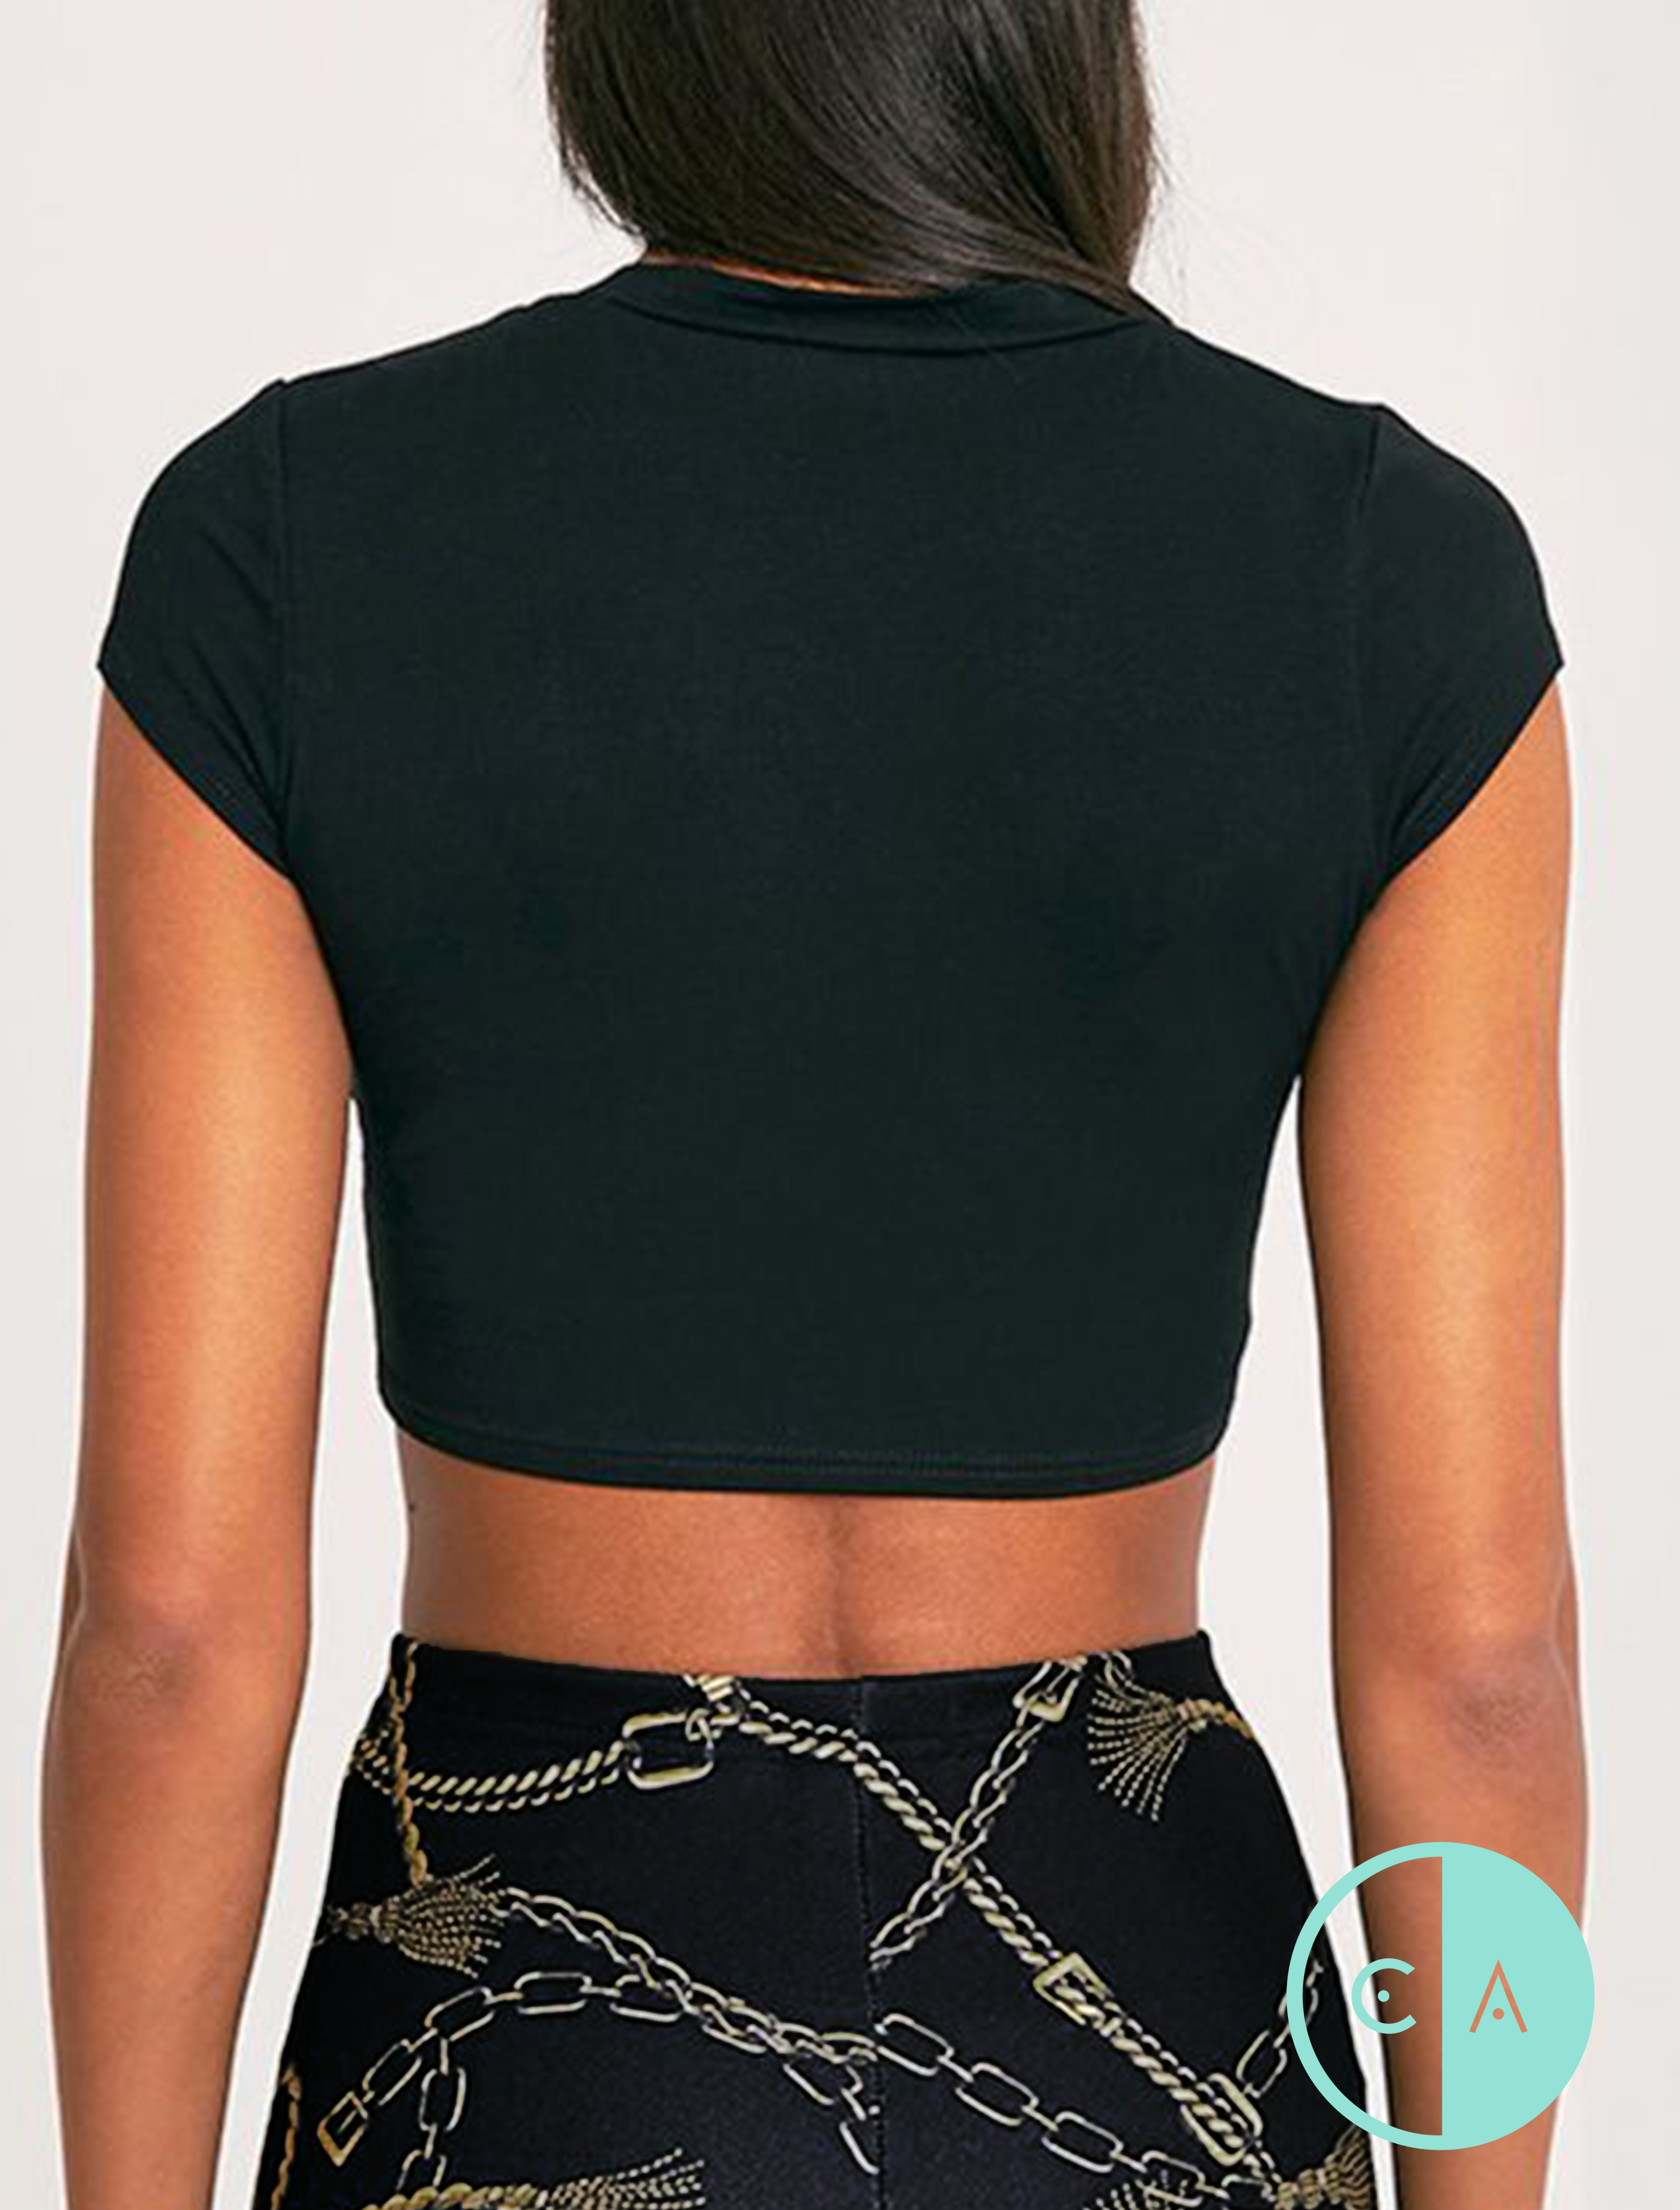 b12c239b9b196 Black Short Sleeve Ripped Style Crop Top T-shirt